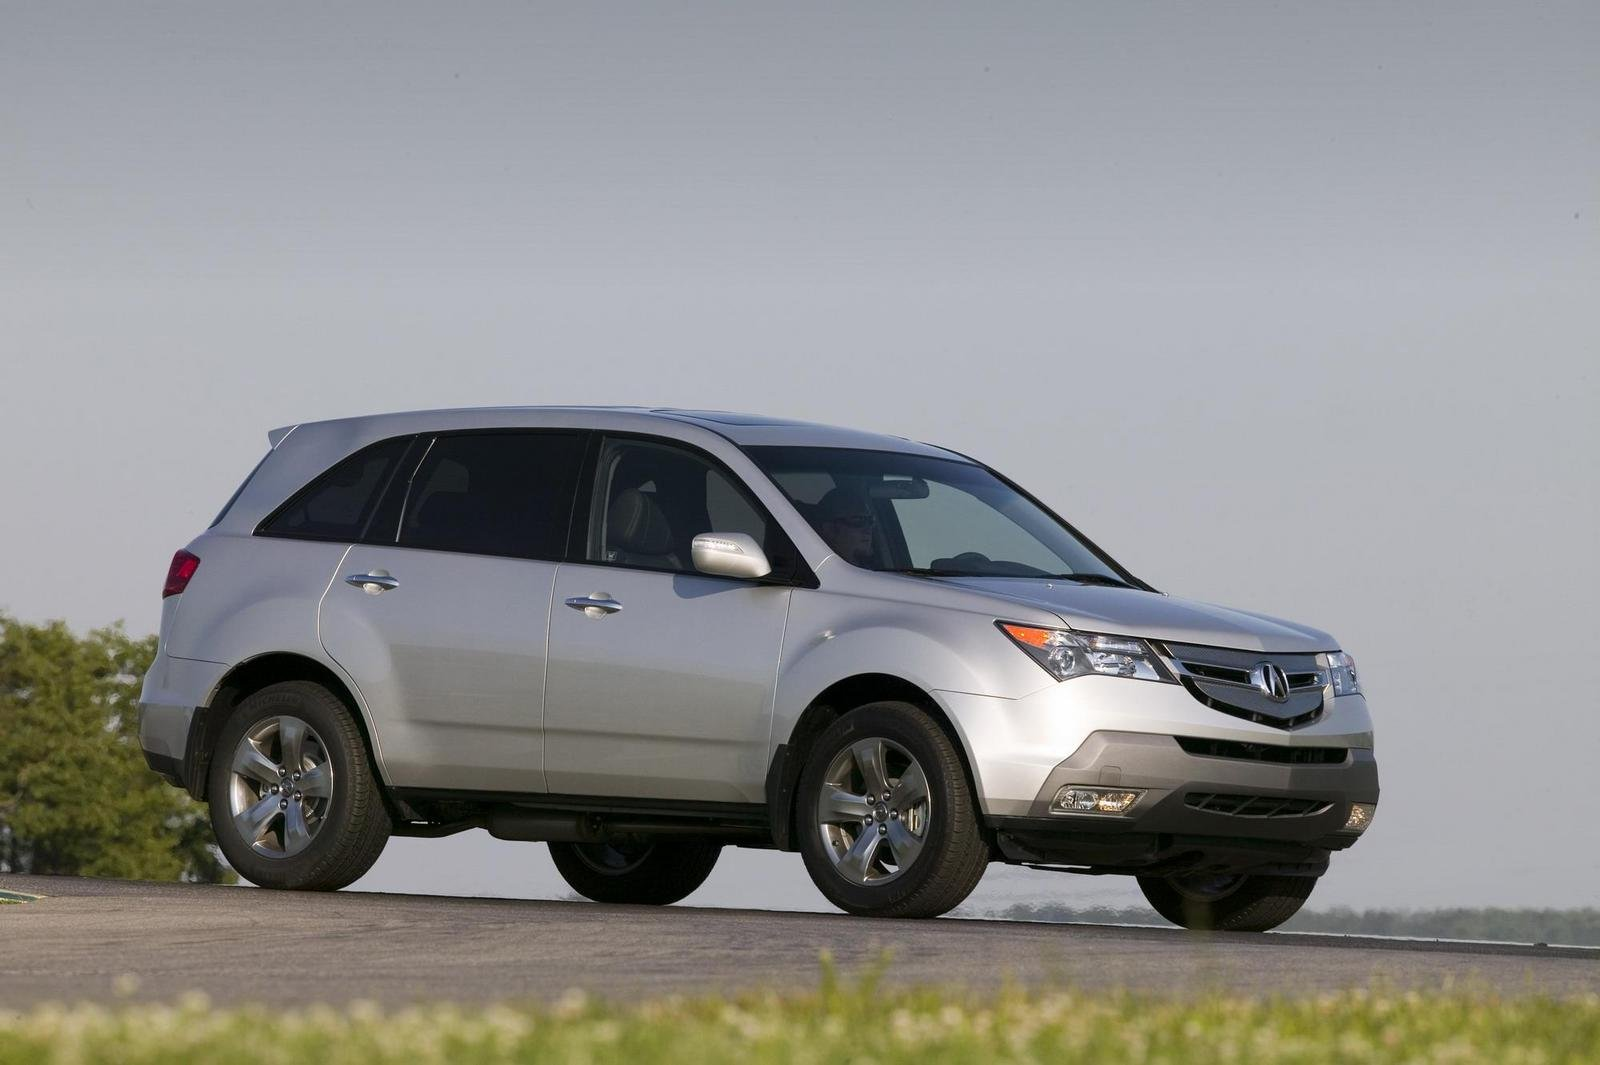 2009 acura mdx picture 299819 car review top speed. Black Bedroom Furniture Sets. Home Design Ideas